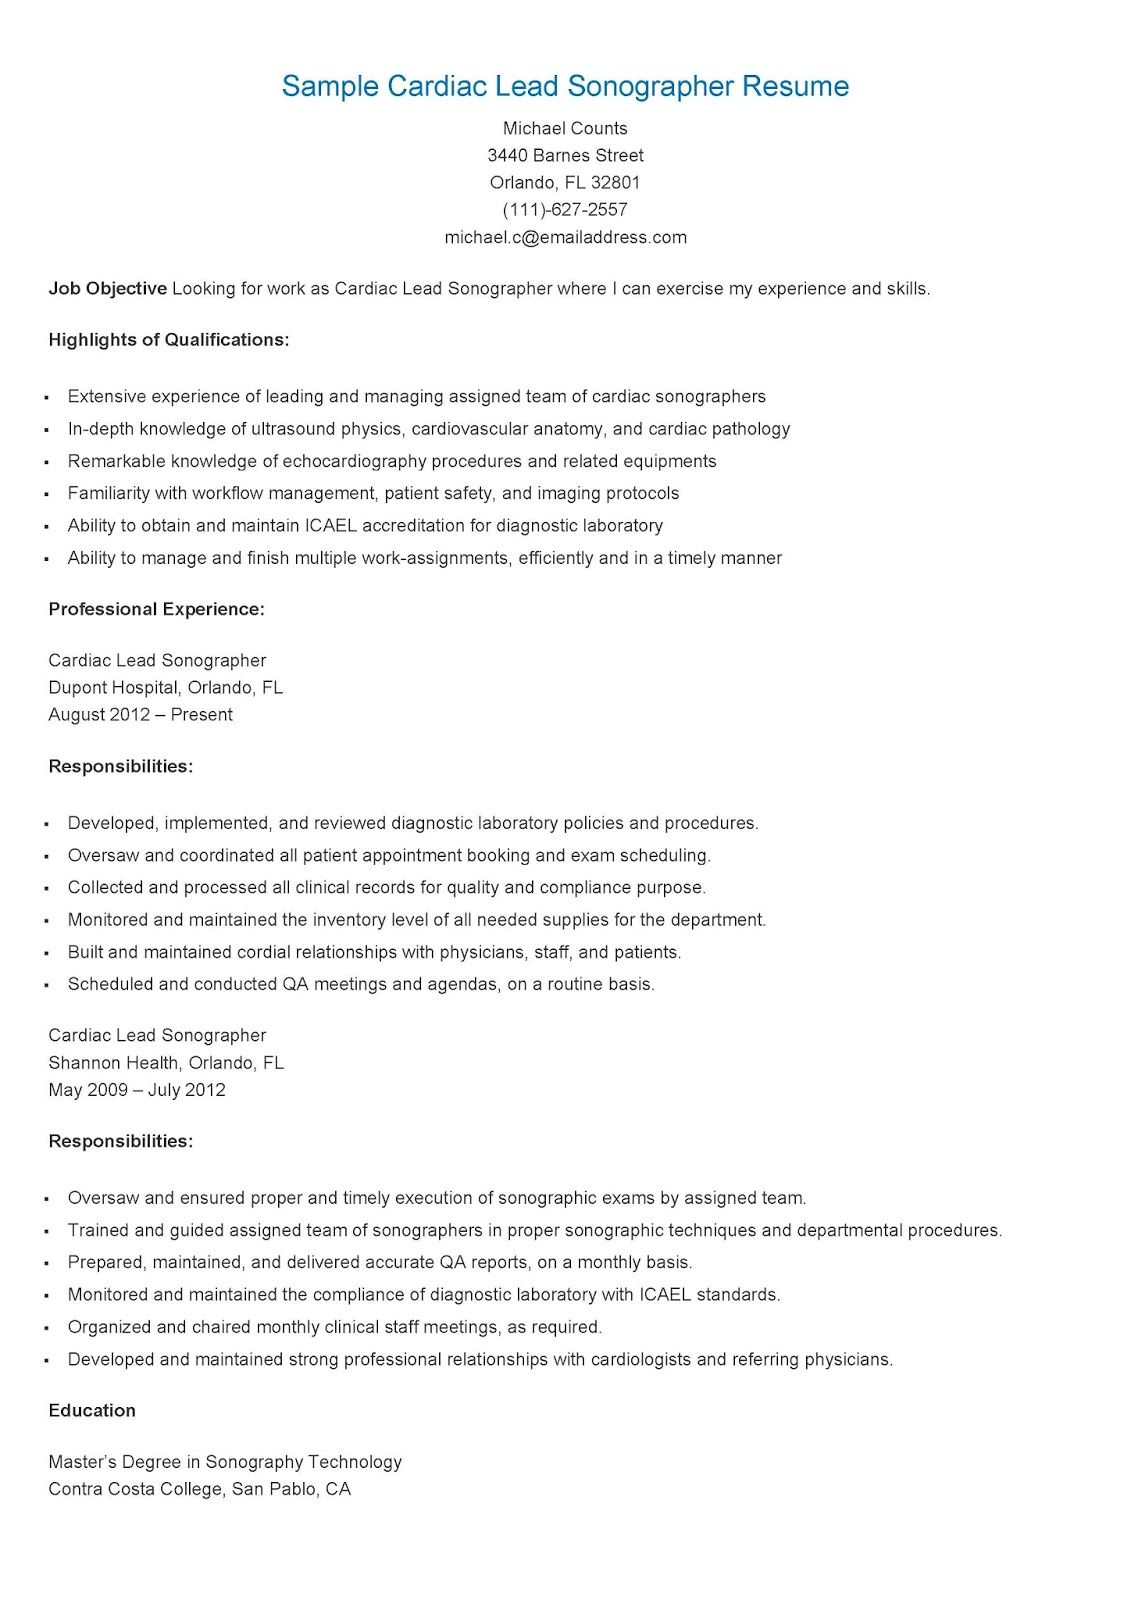 Sample Cardiac Lead Sonographer Resume  Resame